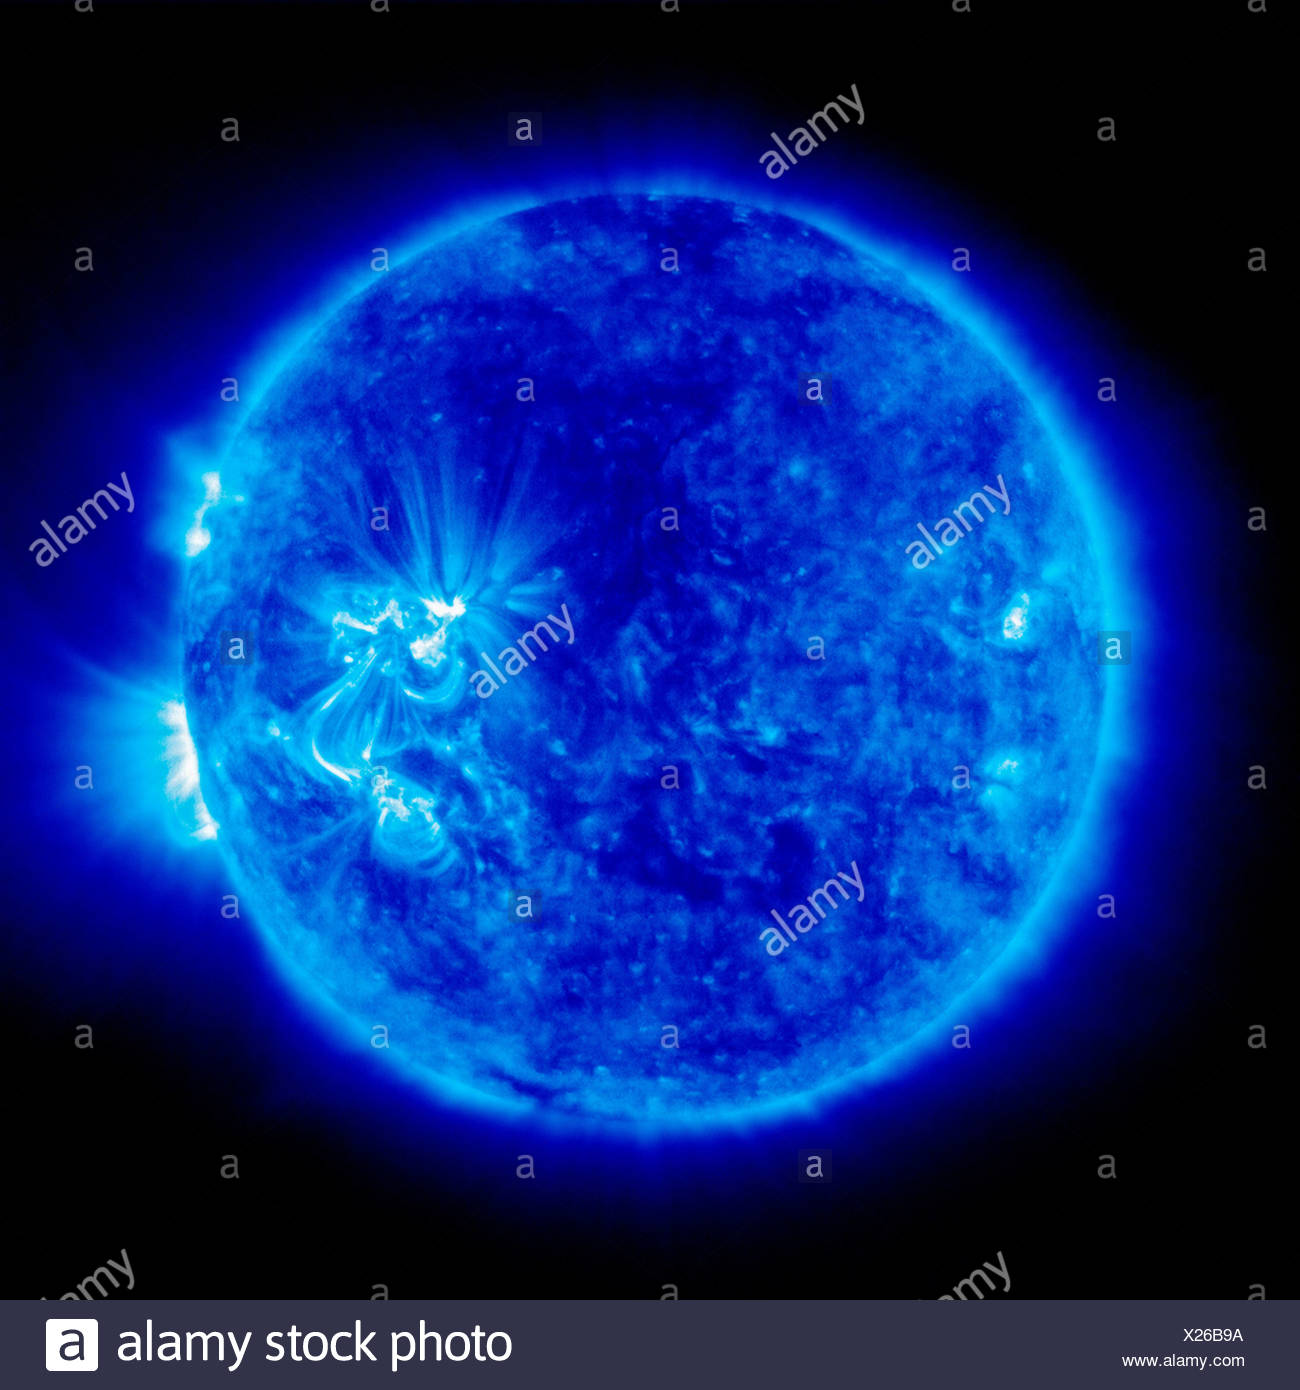 An image Sun taken Extreme ultraviolet Imaging Telescope (EIT) Solar Heliospheric Observatory (SOHO) 171 angstroms shows loops - Stock Image